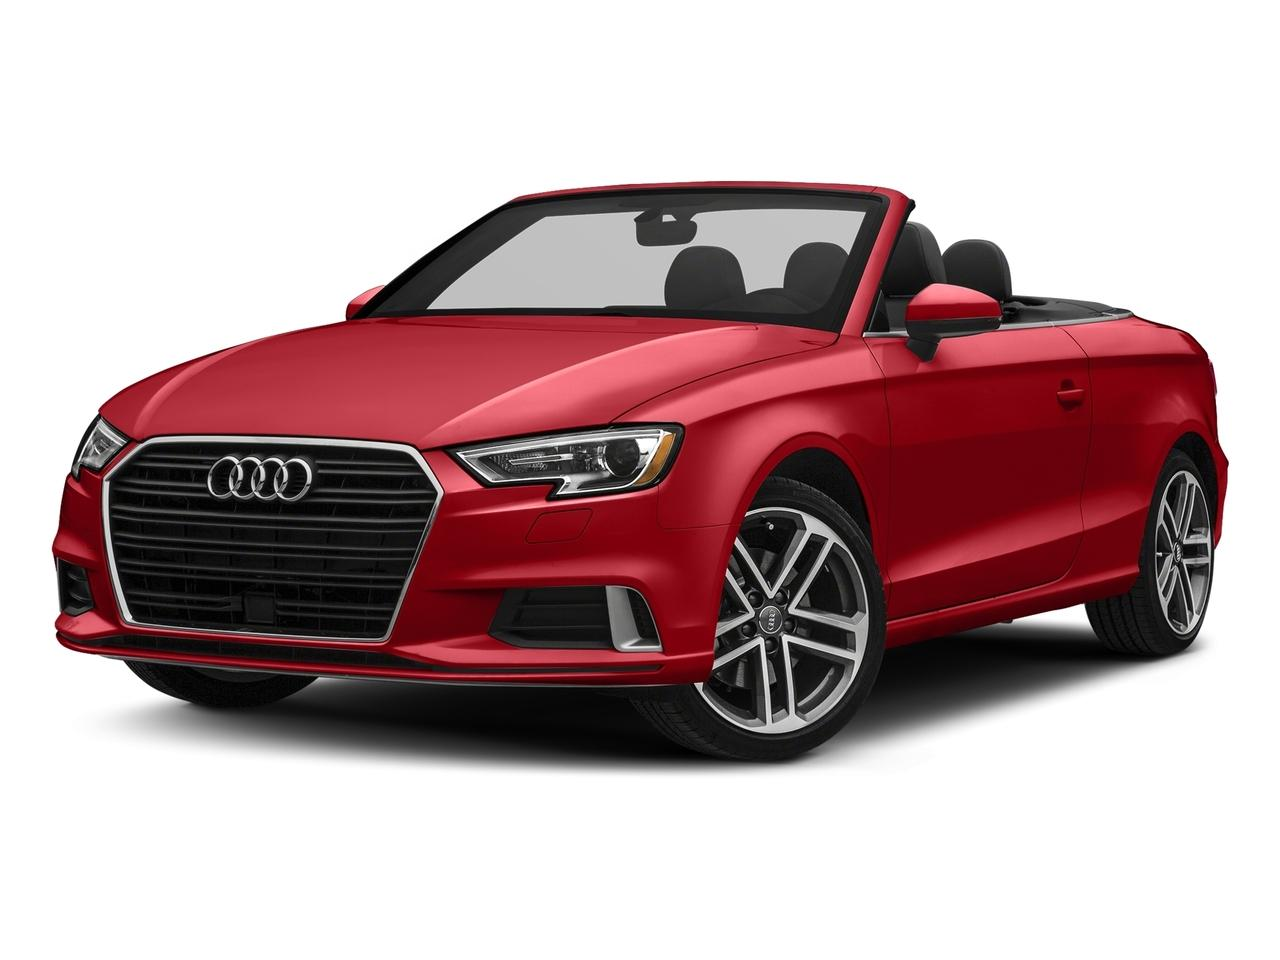 2017 Audi A3 Cabriolet Vehicle Photo in Allentown, PA 18103